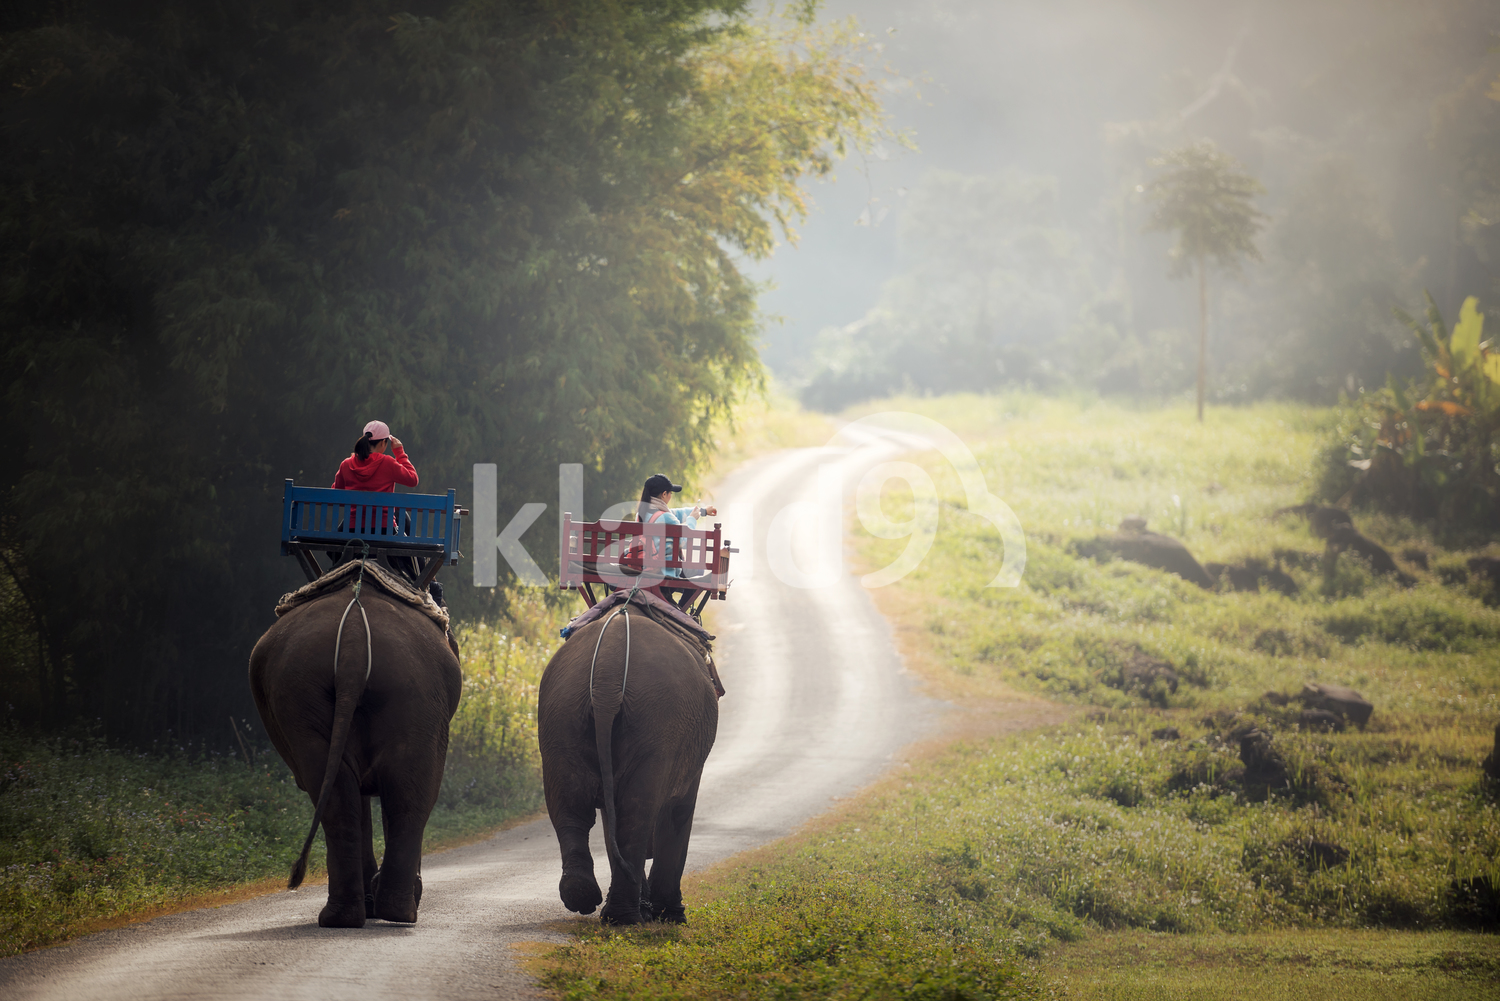 Elephants trekking through jungle with tourists on them